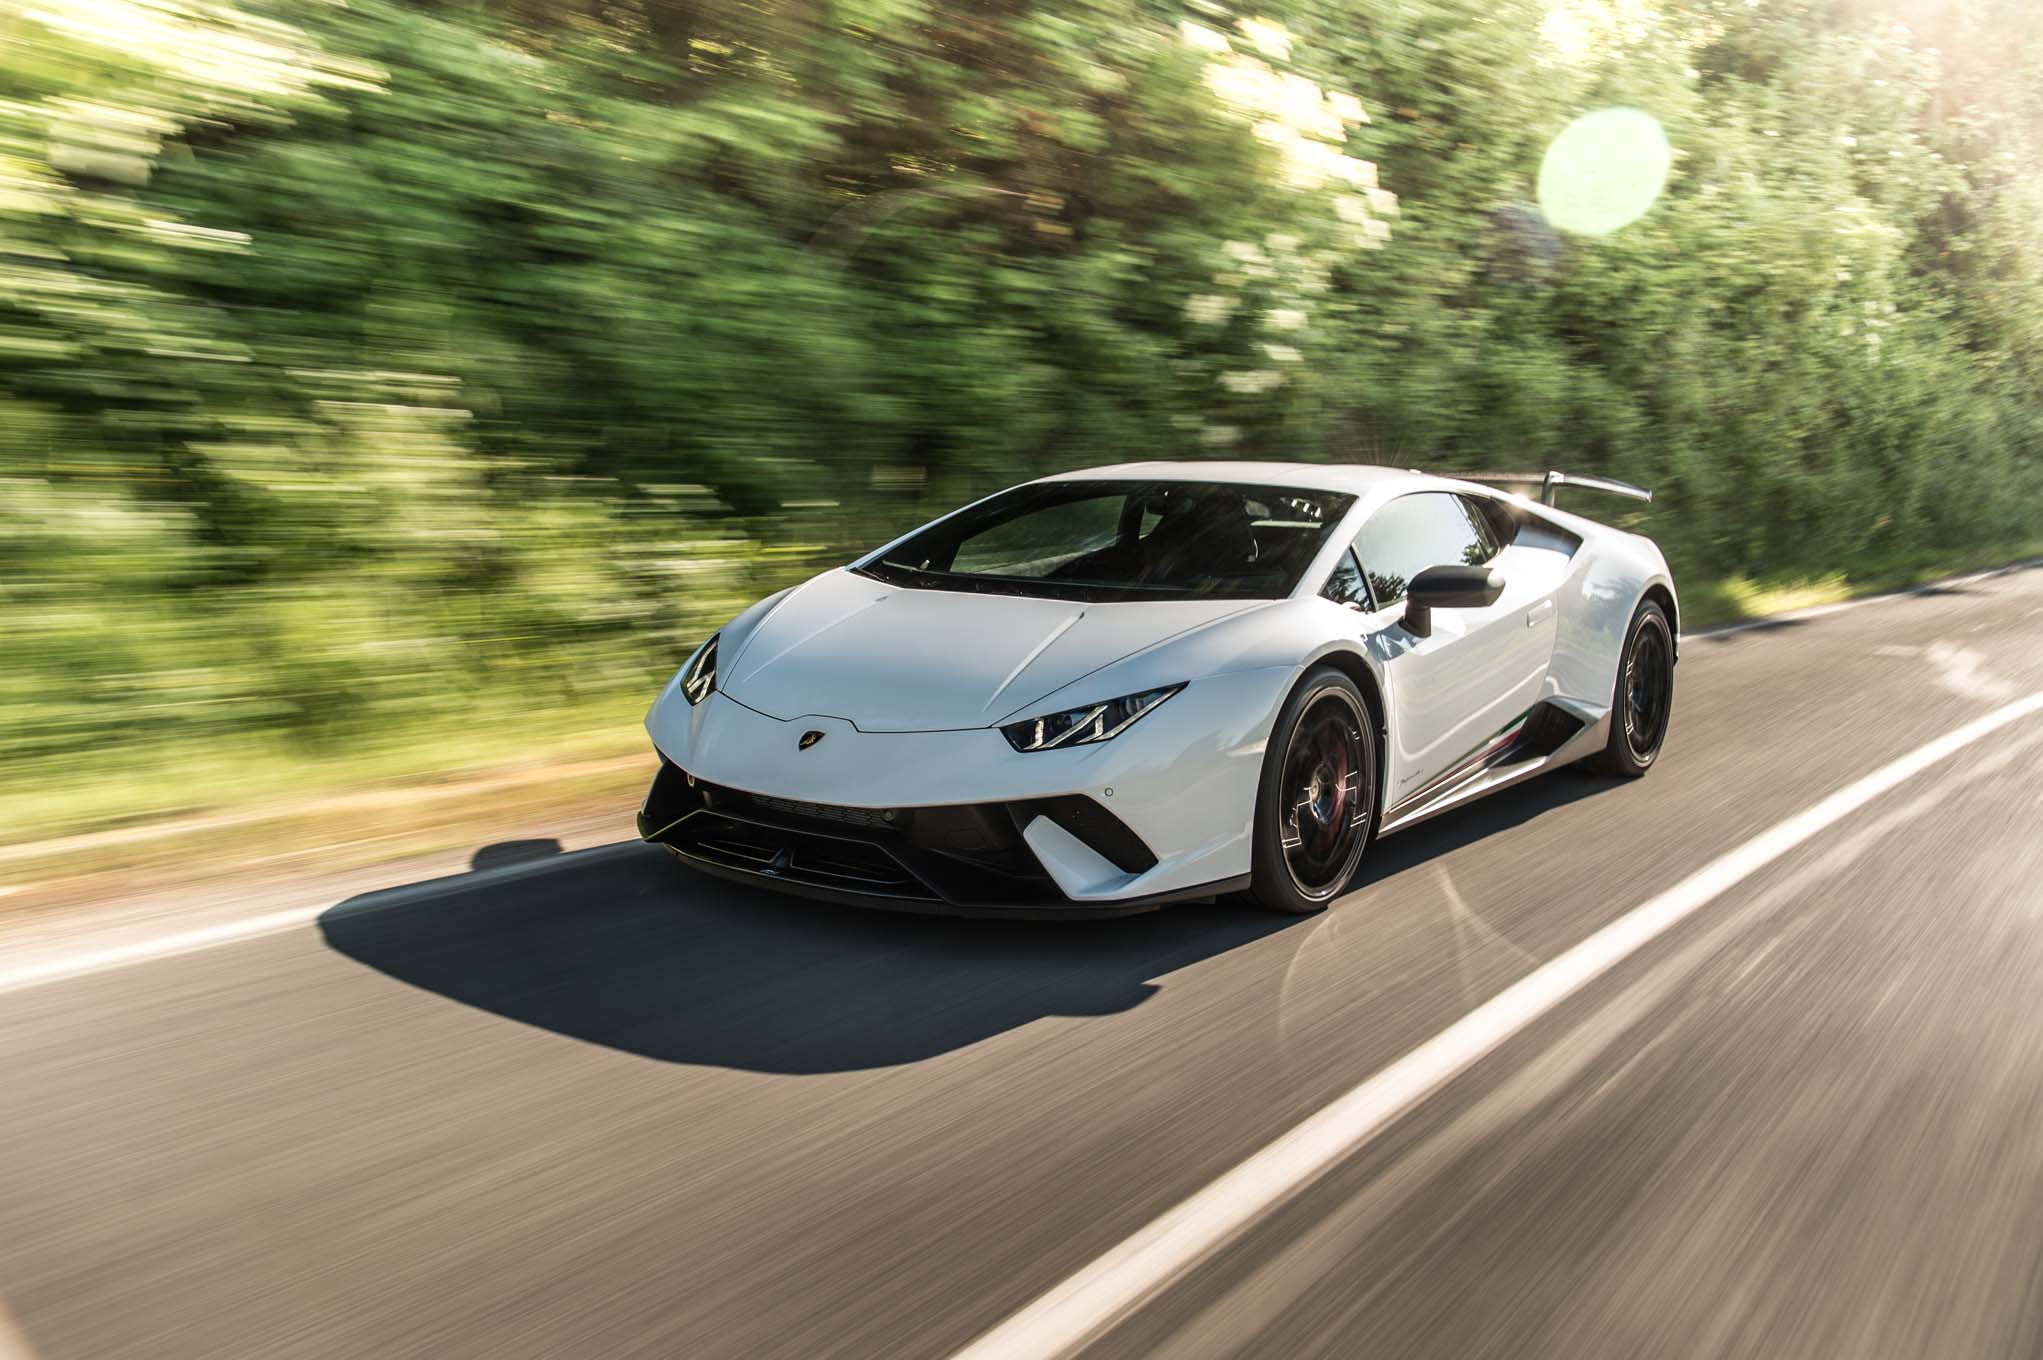 2018-Lamborghini-Huracan-Performante-front-three-quarter-in-motion Stunning Lamborghini Huracan Price Real Racing 3 Cars Trend